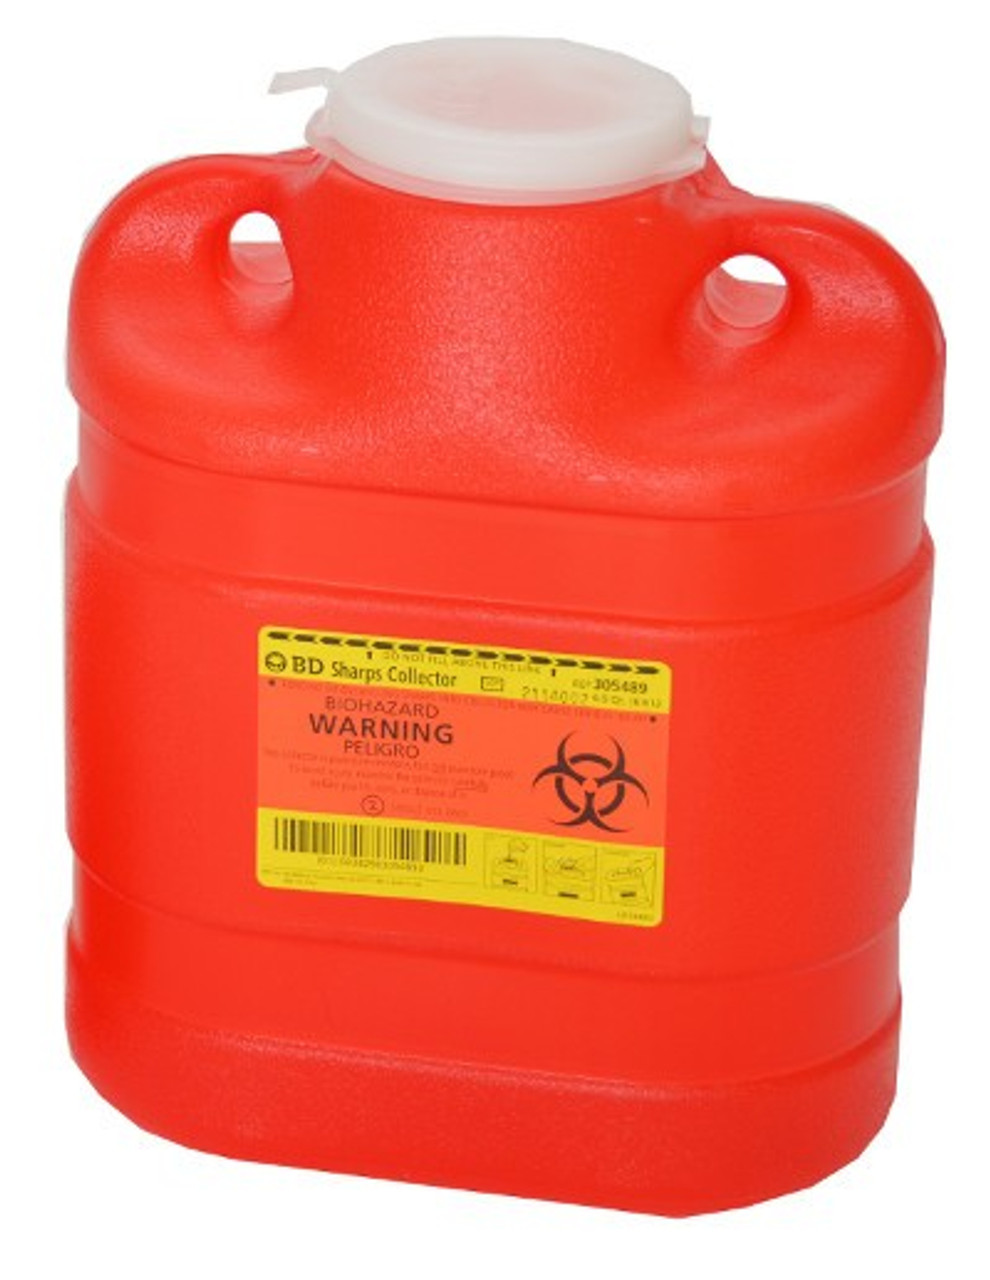 6.9 Quart Sharps Container #305489 by BD